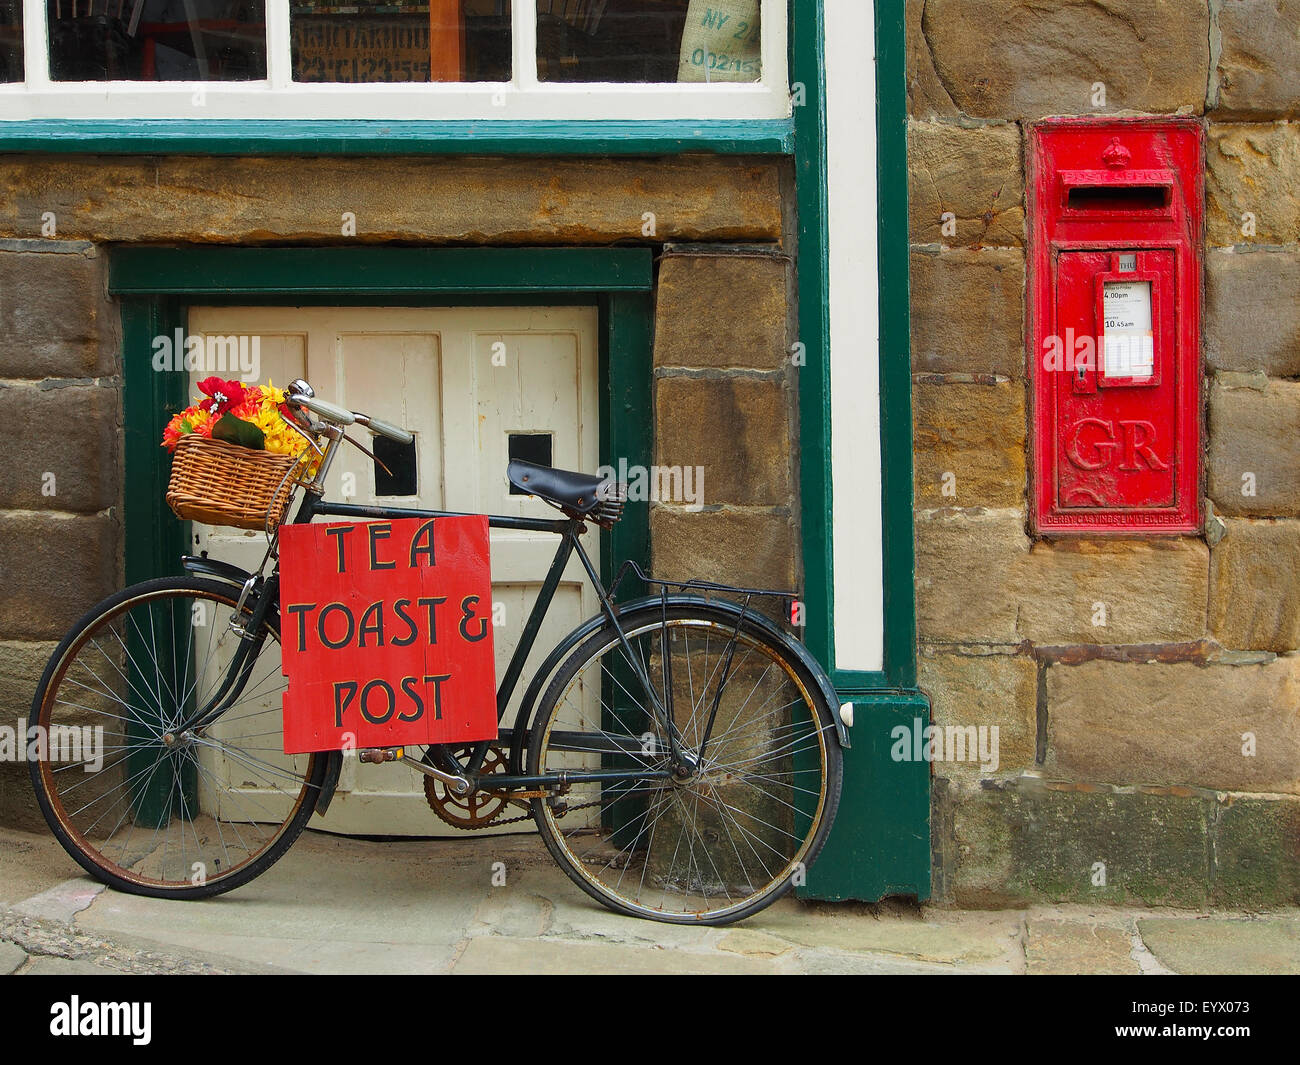 Bicycle sign advertising Tea, Toast and Post outside a cafe at Robin Hoods Bay Near Whitby on the Yorkshire coast Stock Photo